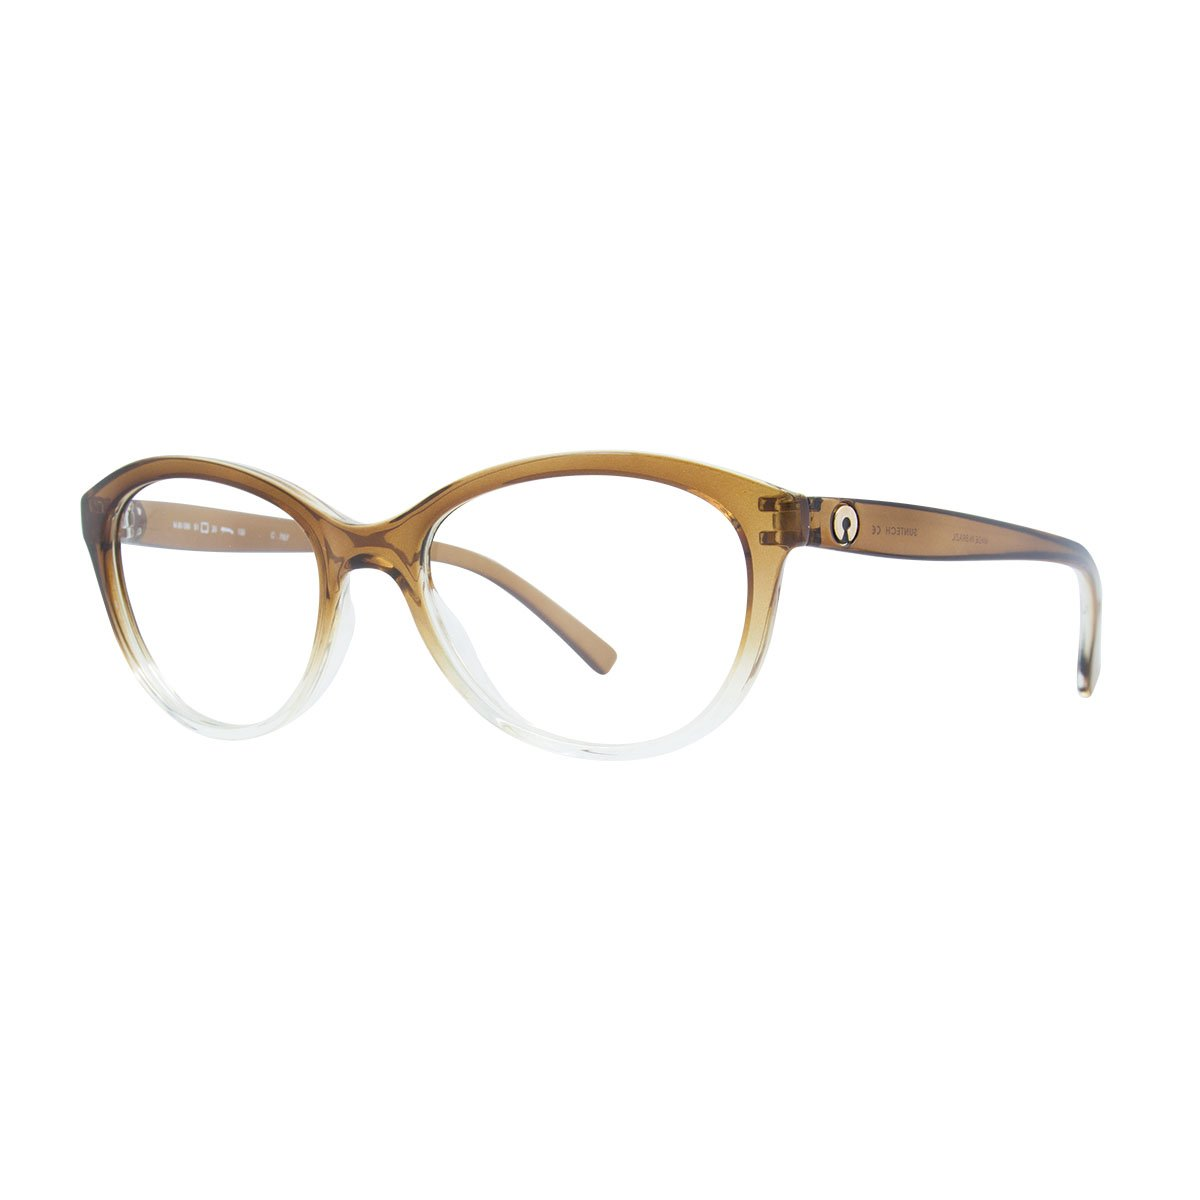 SECRET GRILAMID 80090 GLASSY BROWN